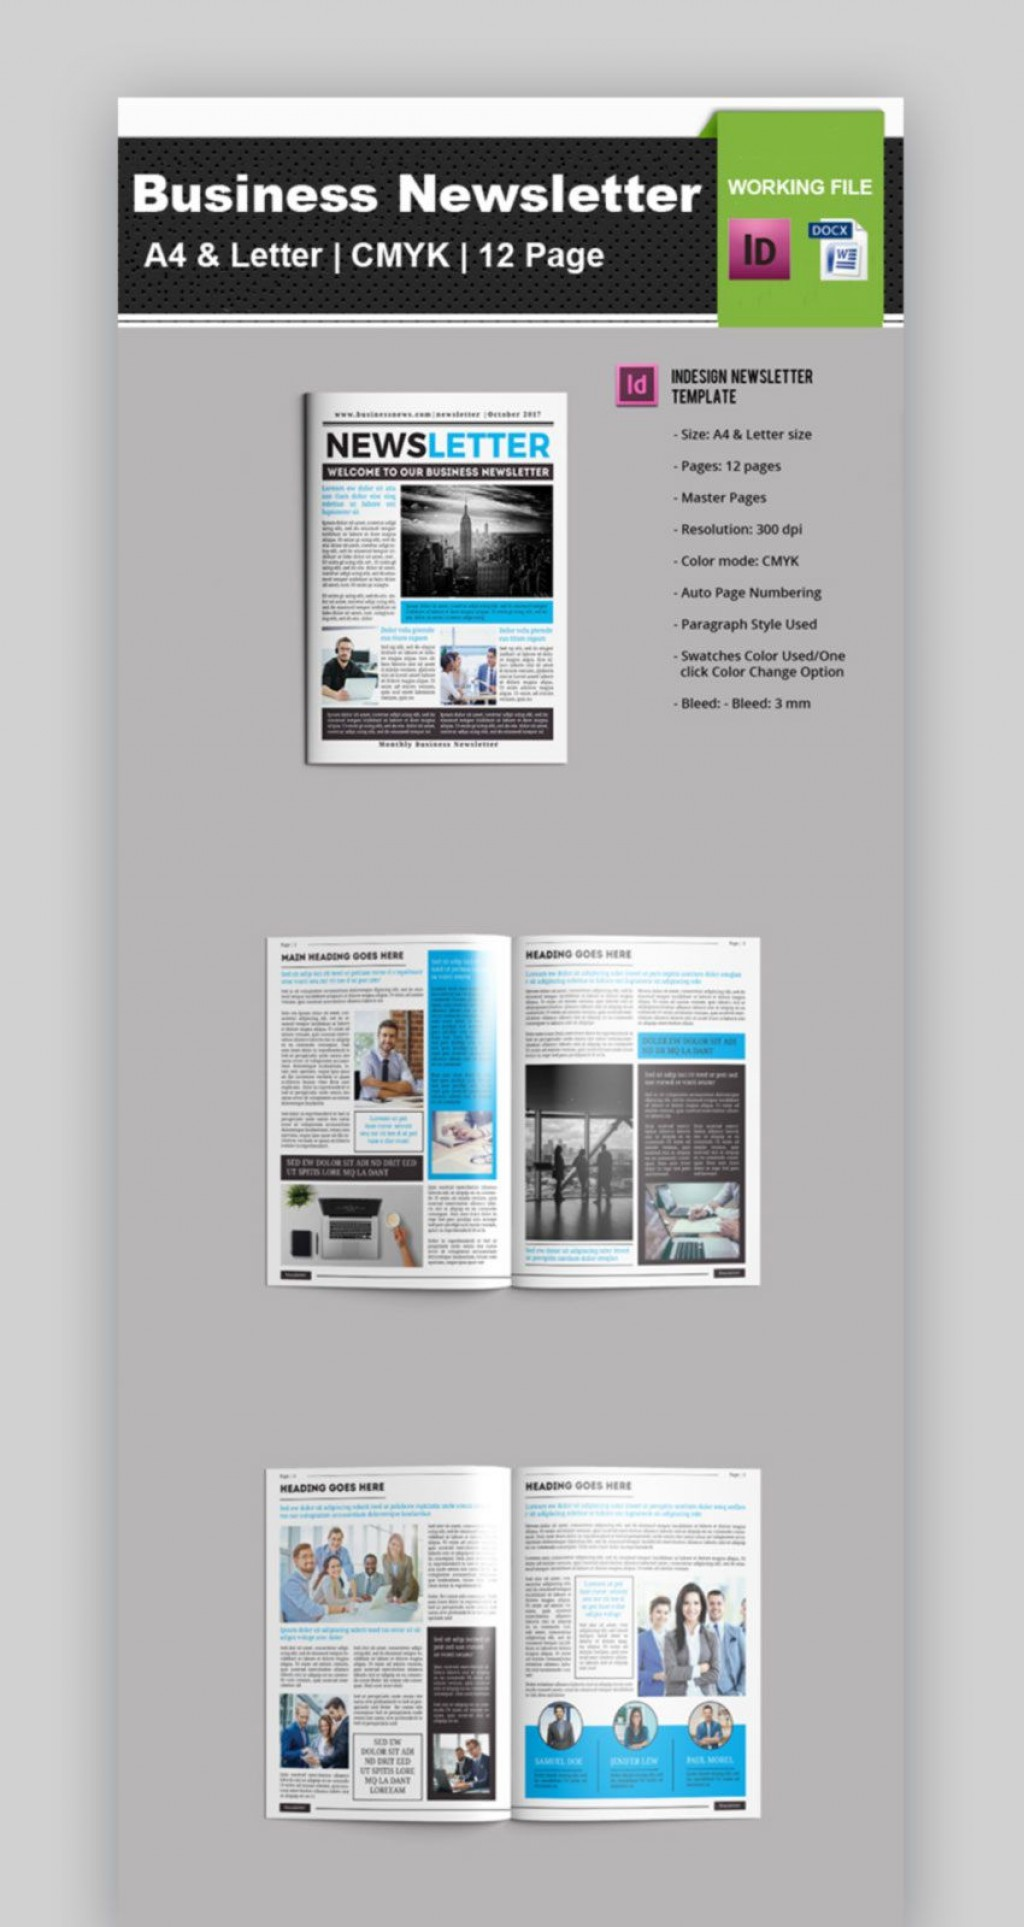 008 Remarkable Microsoft Newsletter Template Free Concept  Powerpoint School Publisher DownloadLarge